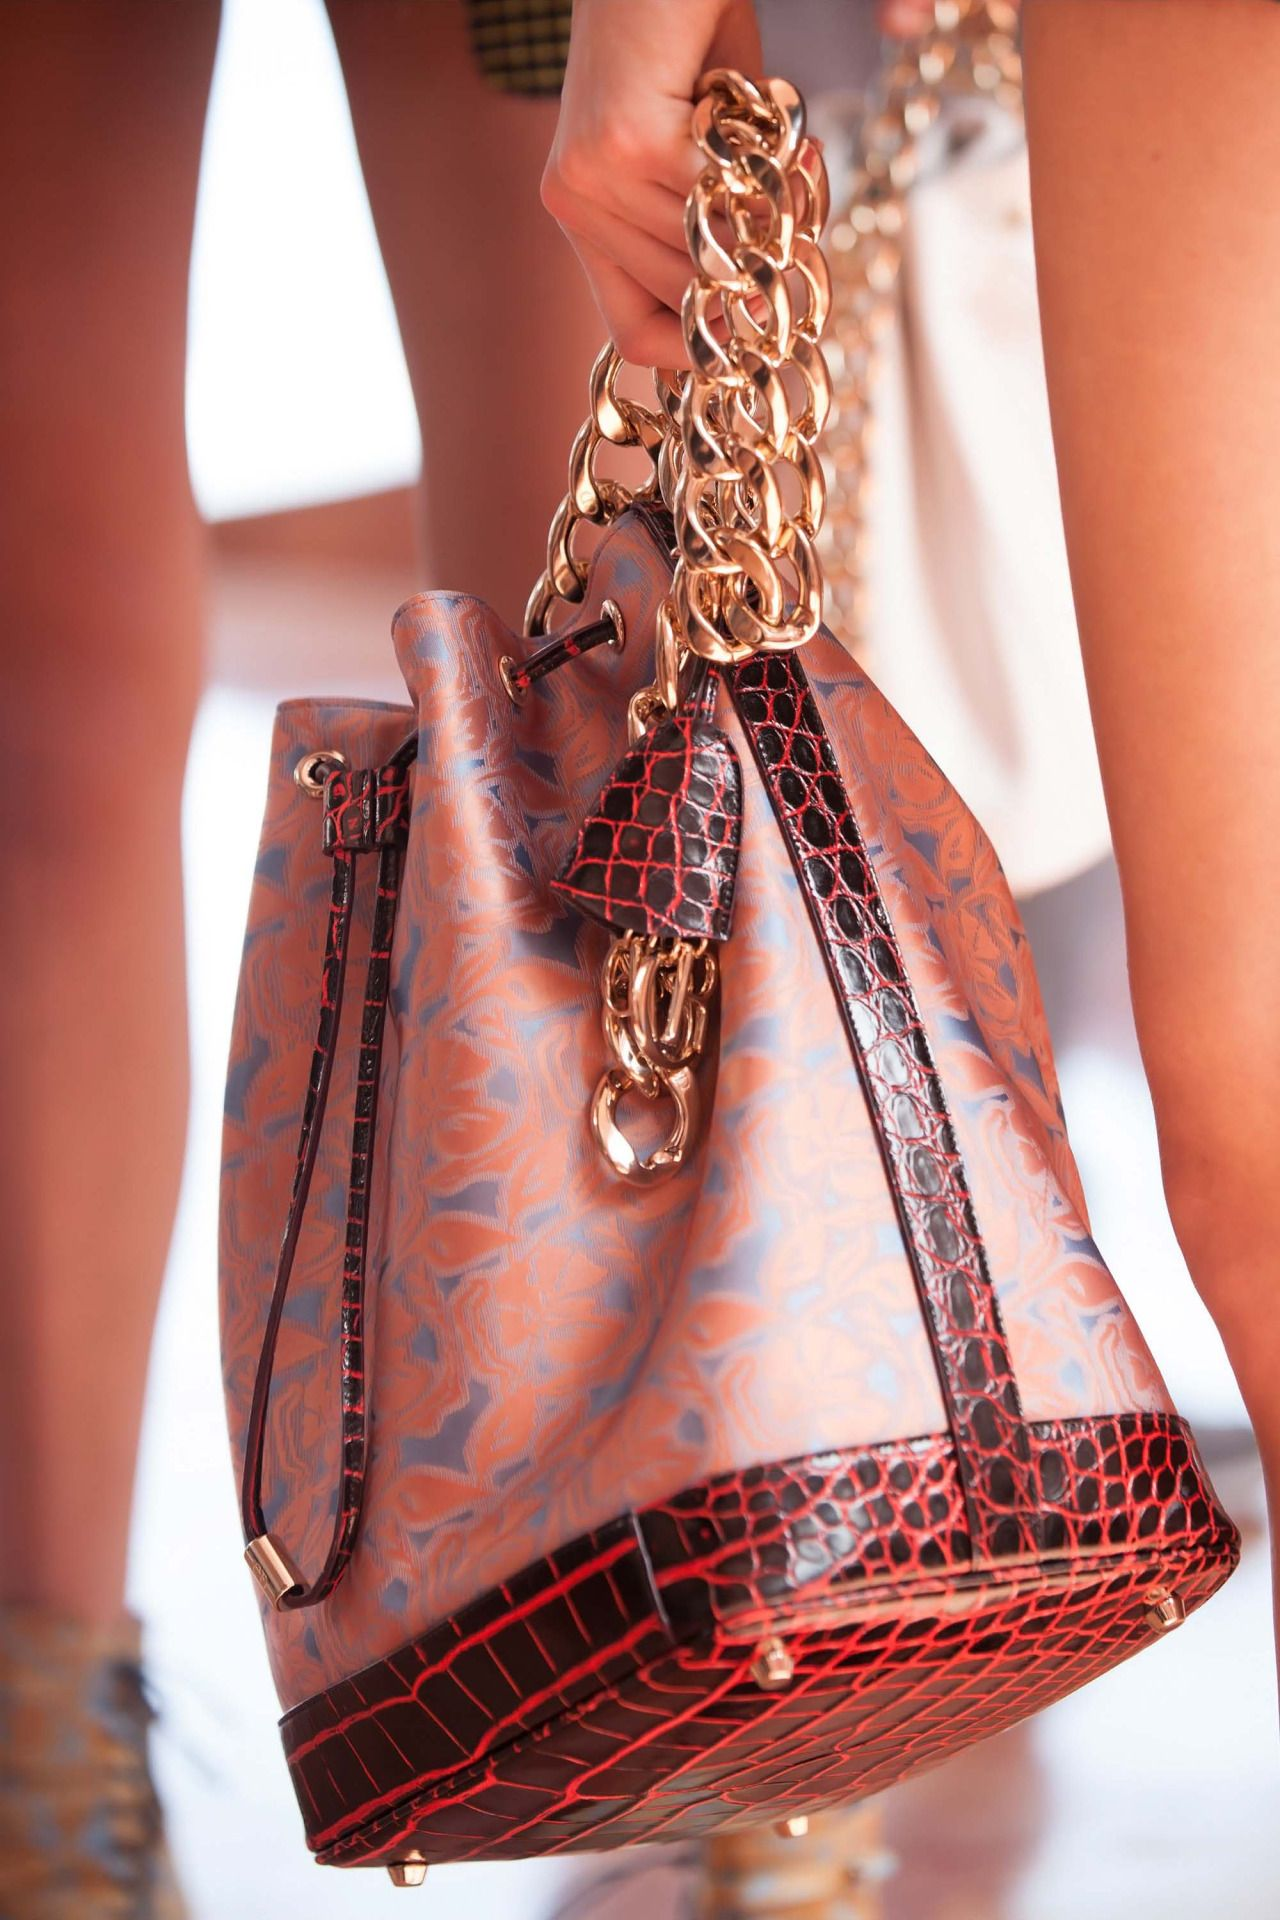 Bucket bag with a gold chain strap - DIOR par Raf Simons - Cruise 2016  Collection  itbag...x 22ccc0fb6e